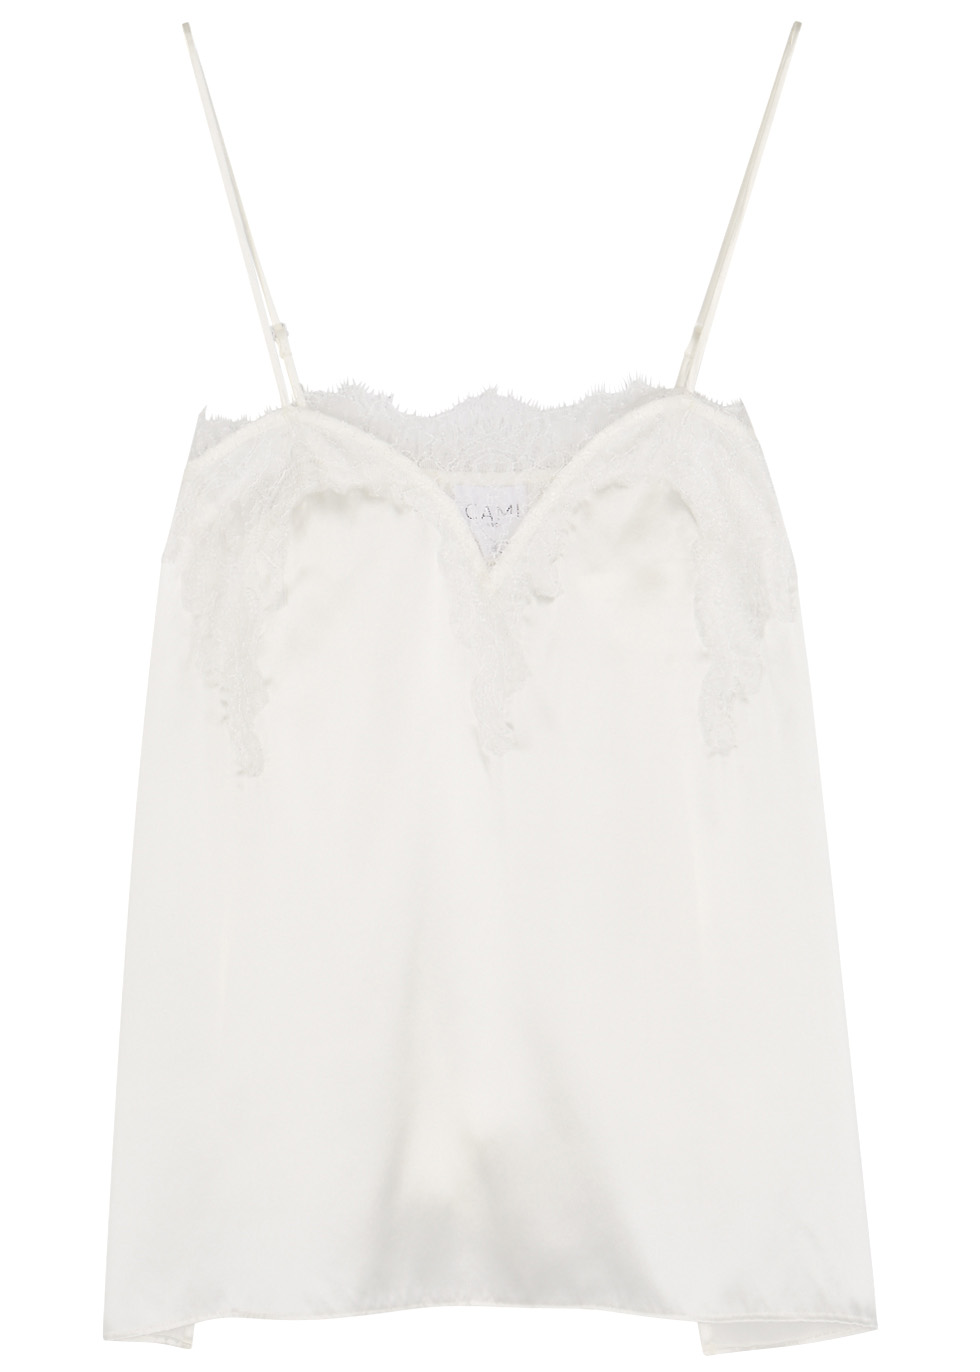 The Sweetheart Lace-Trimmed Silk-Charmeuse Camisole in White